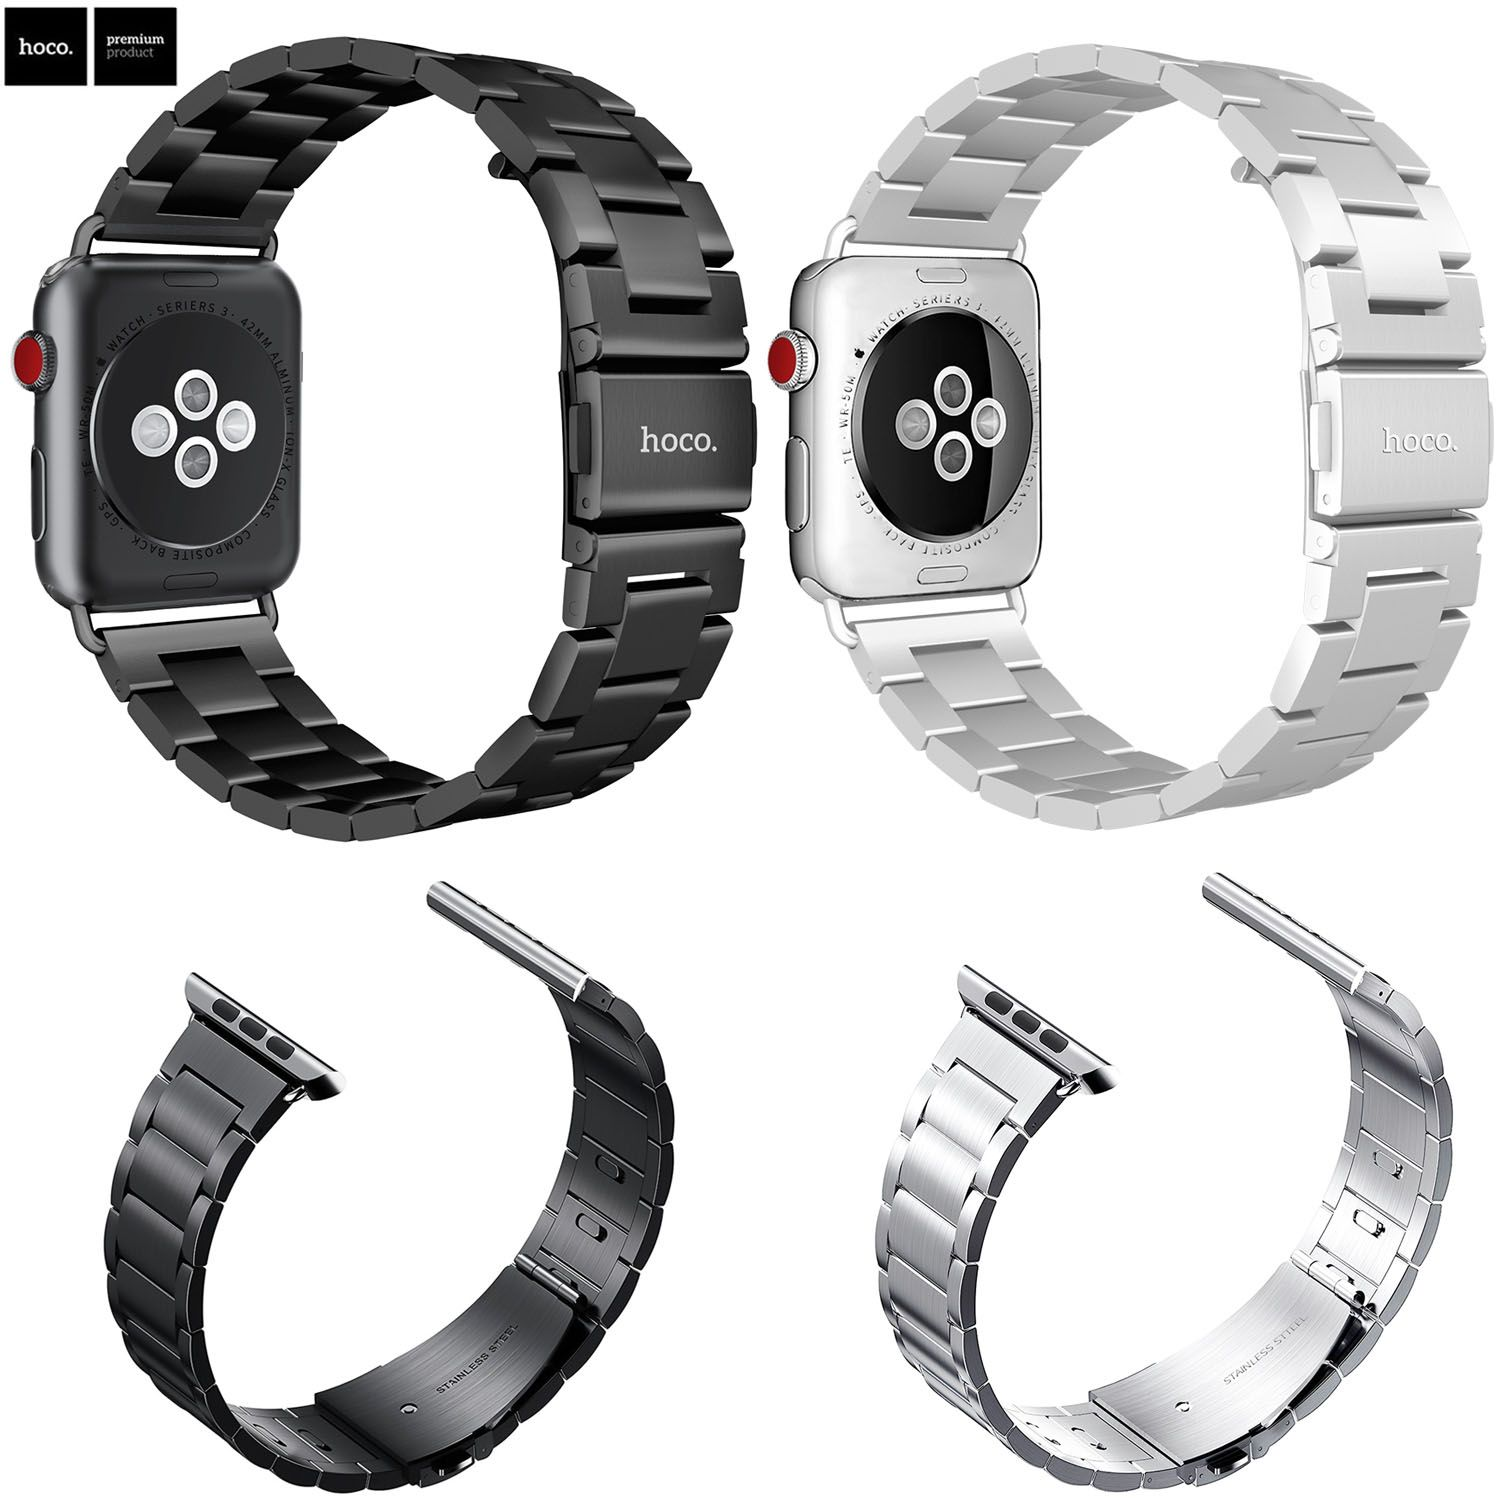 HOCO Sport Strap for Apple Watch Band 38mm 42mm iWatch 3 2 1 Stainless Steel Wrist Band Link Bracelet Watch Band Strap